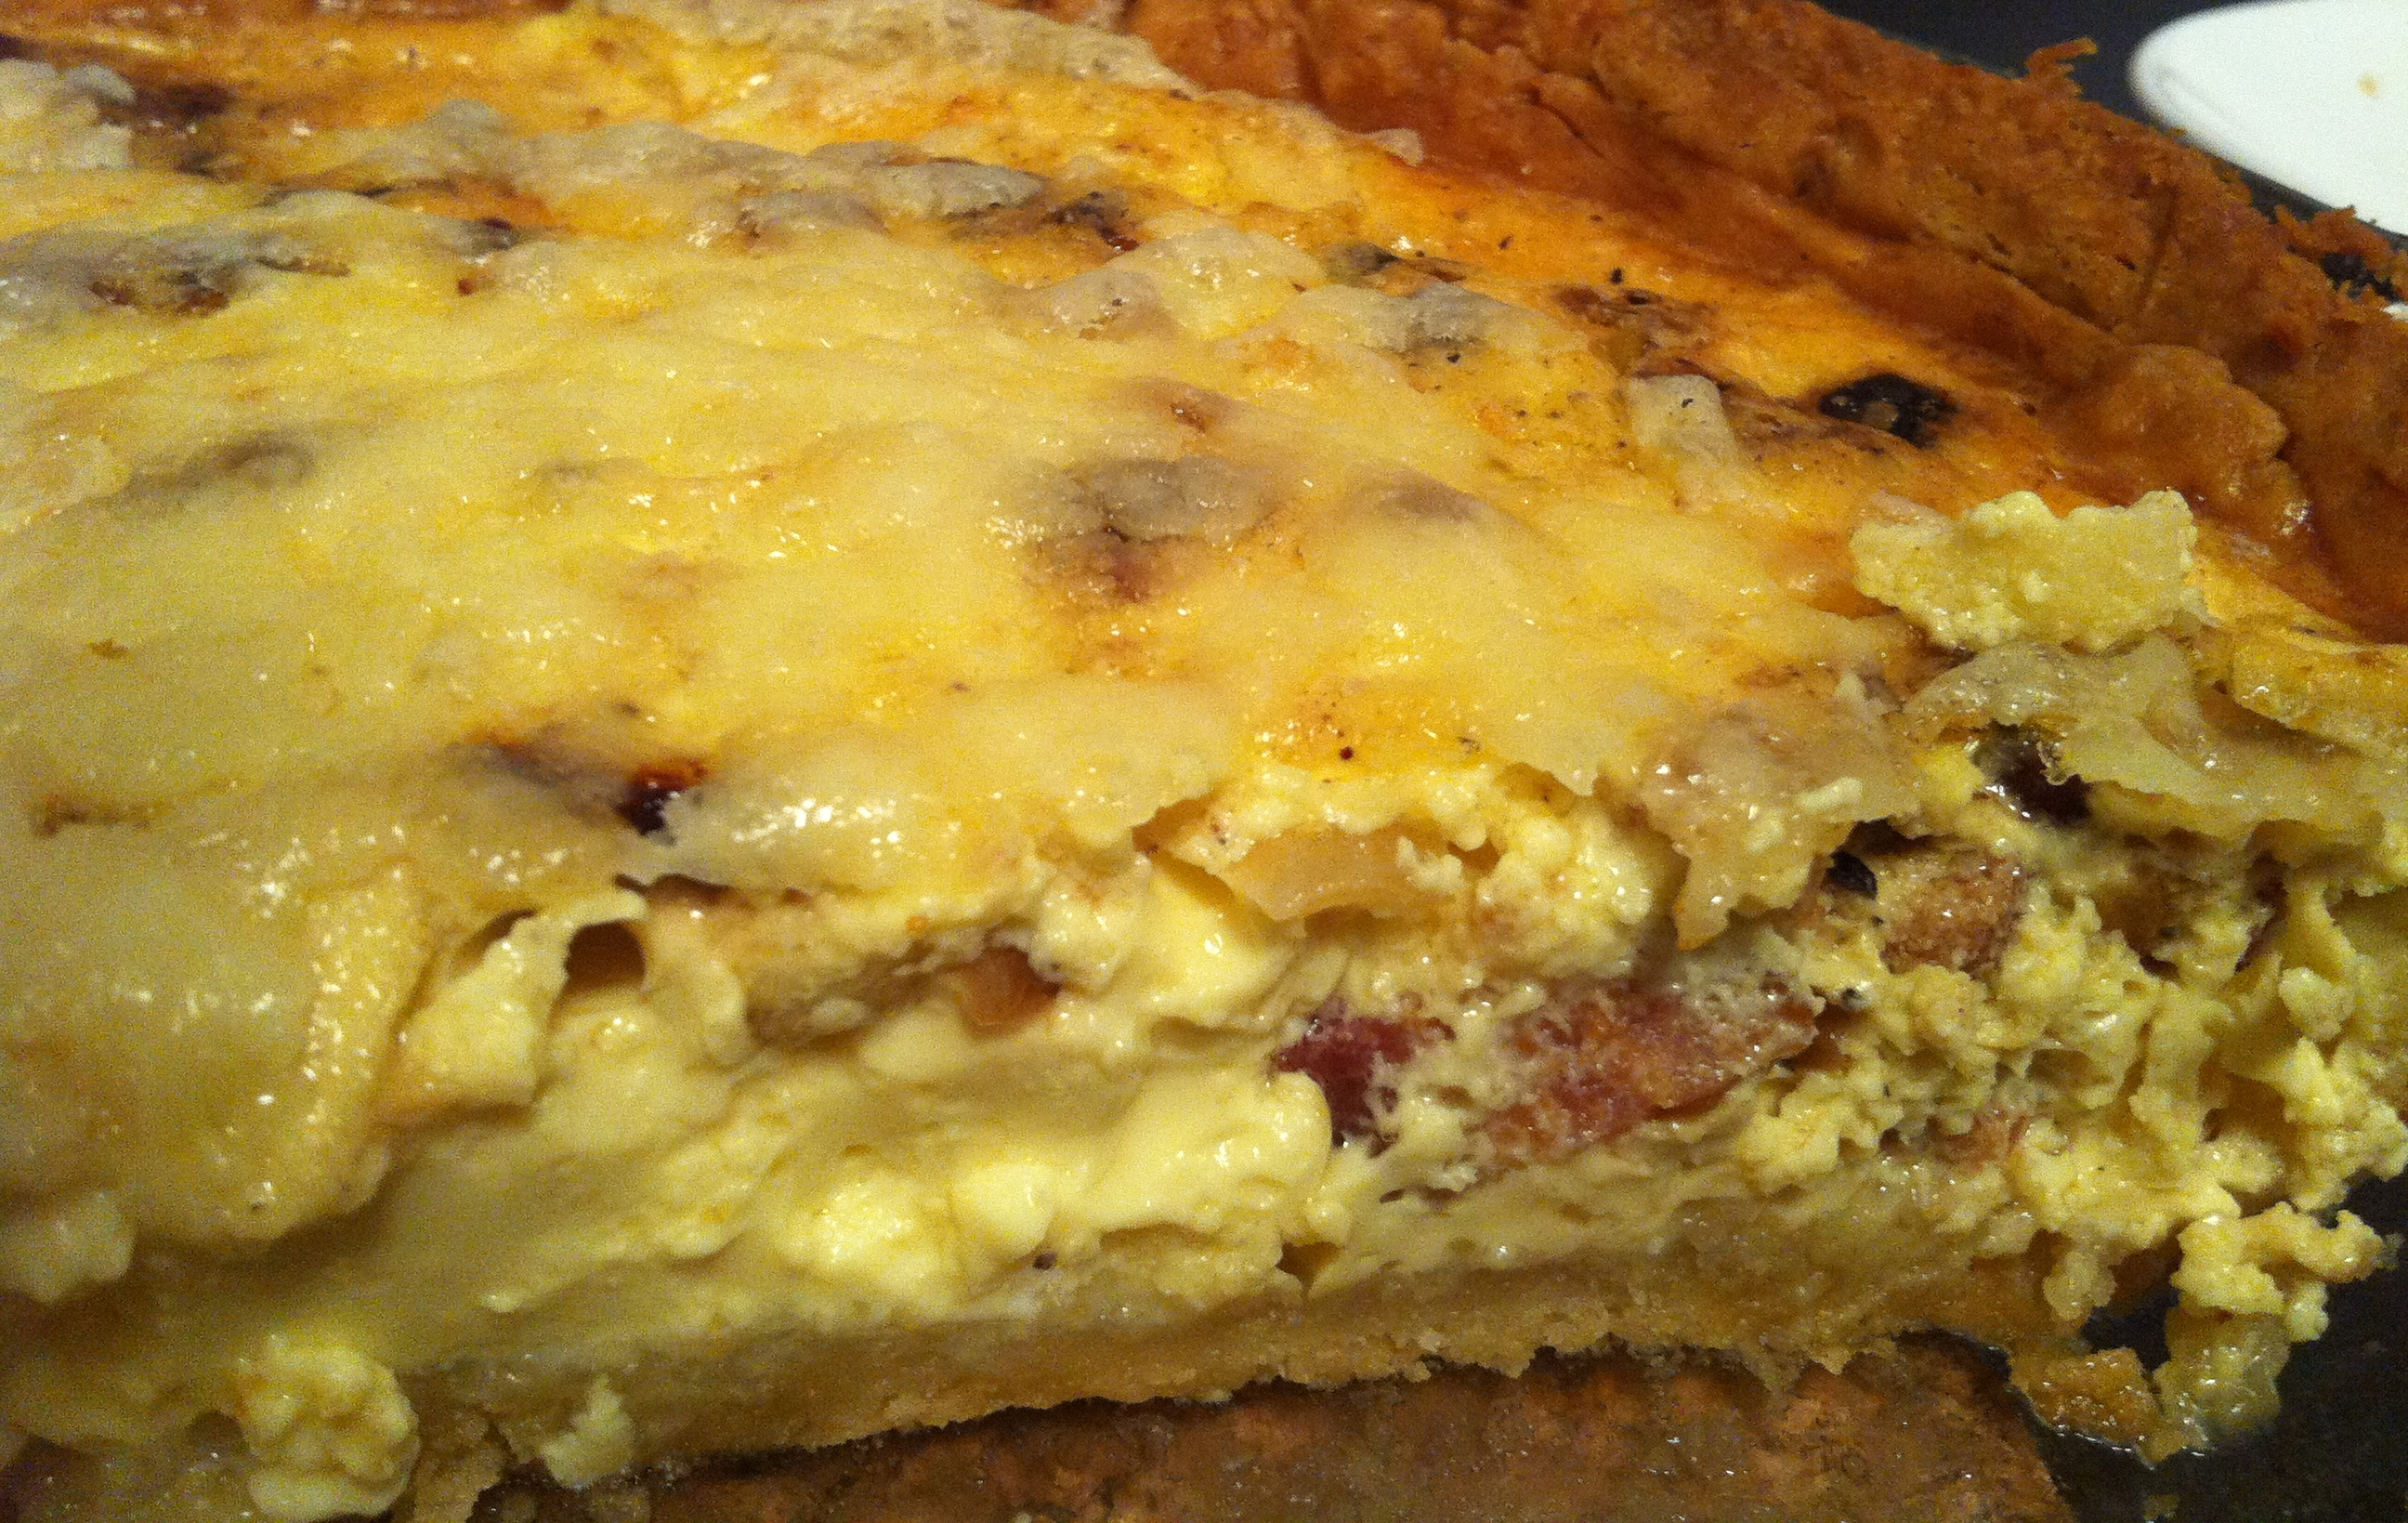 Quiche with crispy bacon, caramelized onions, green apples, and sharp cheddar cheese